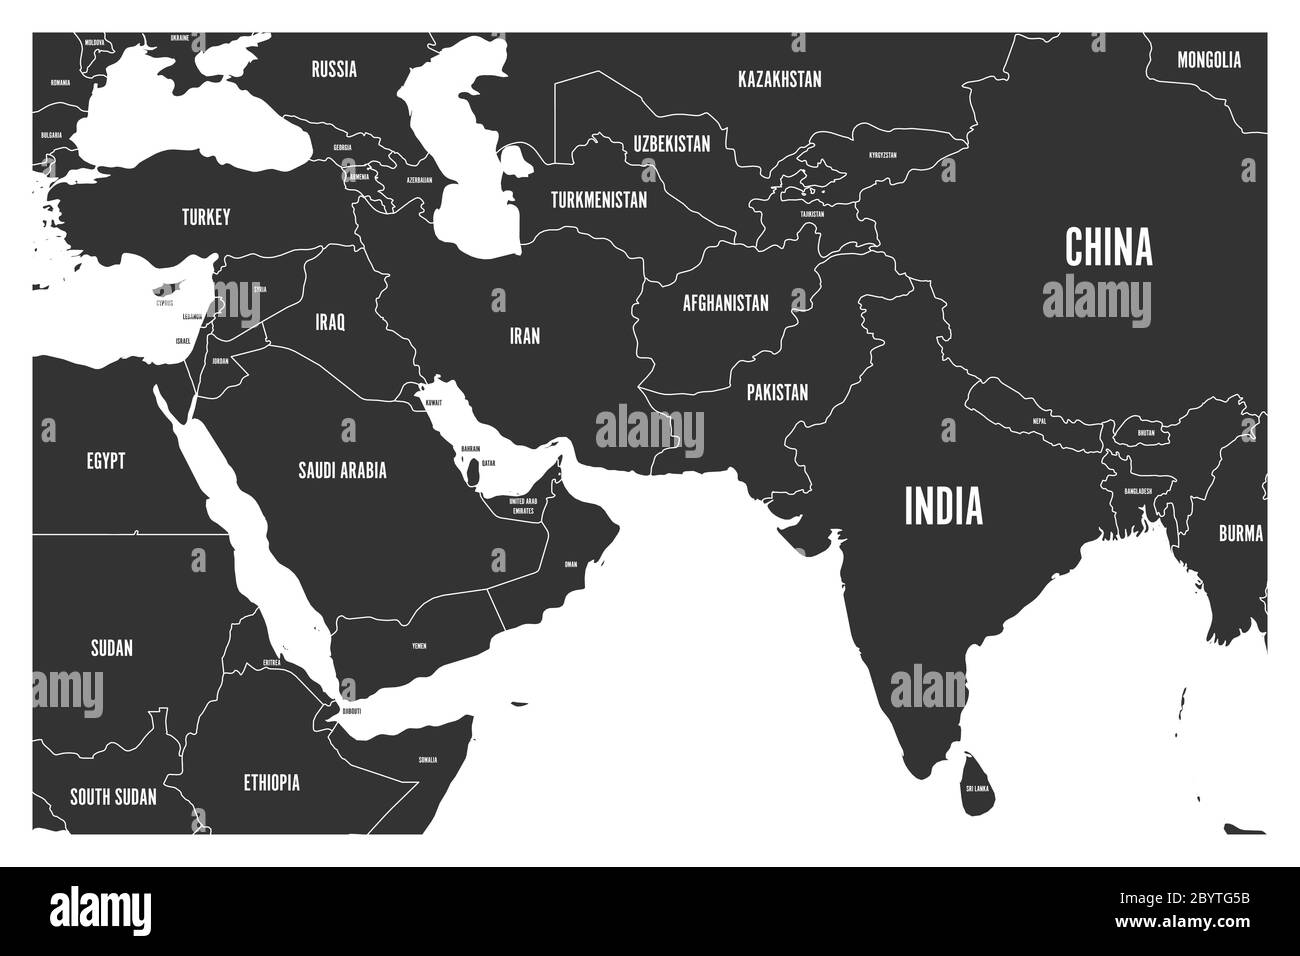 Political Map Of South Asia And Middle East Countries Simple Flat Vector Map In Grey Stock Vector Image Art Alamy